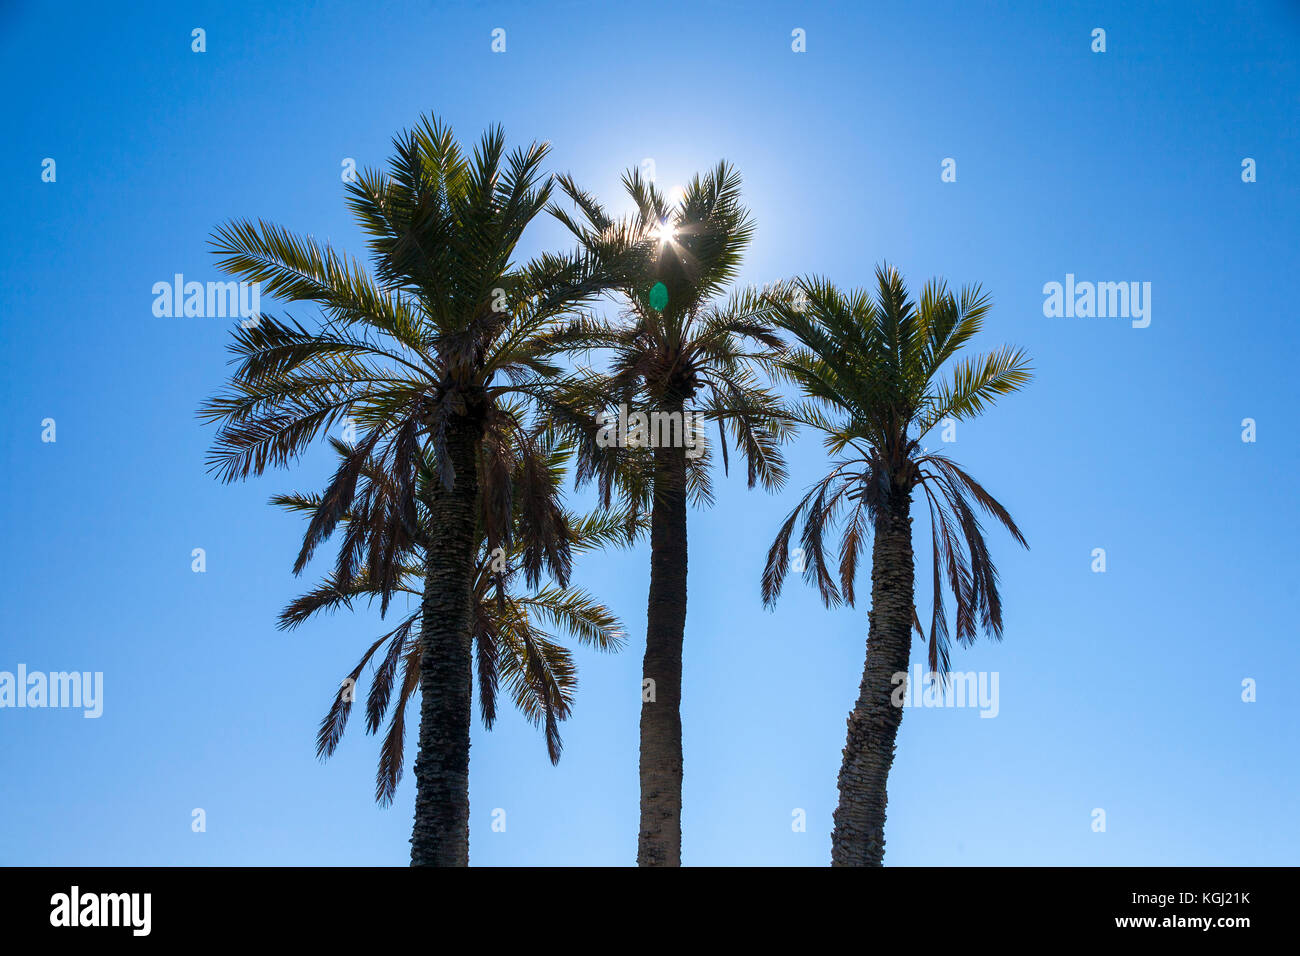 Palm trees against a blue sky with sun - Stock Image